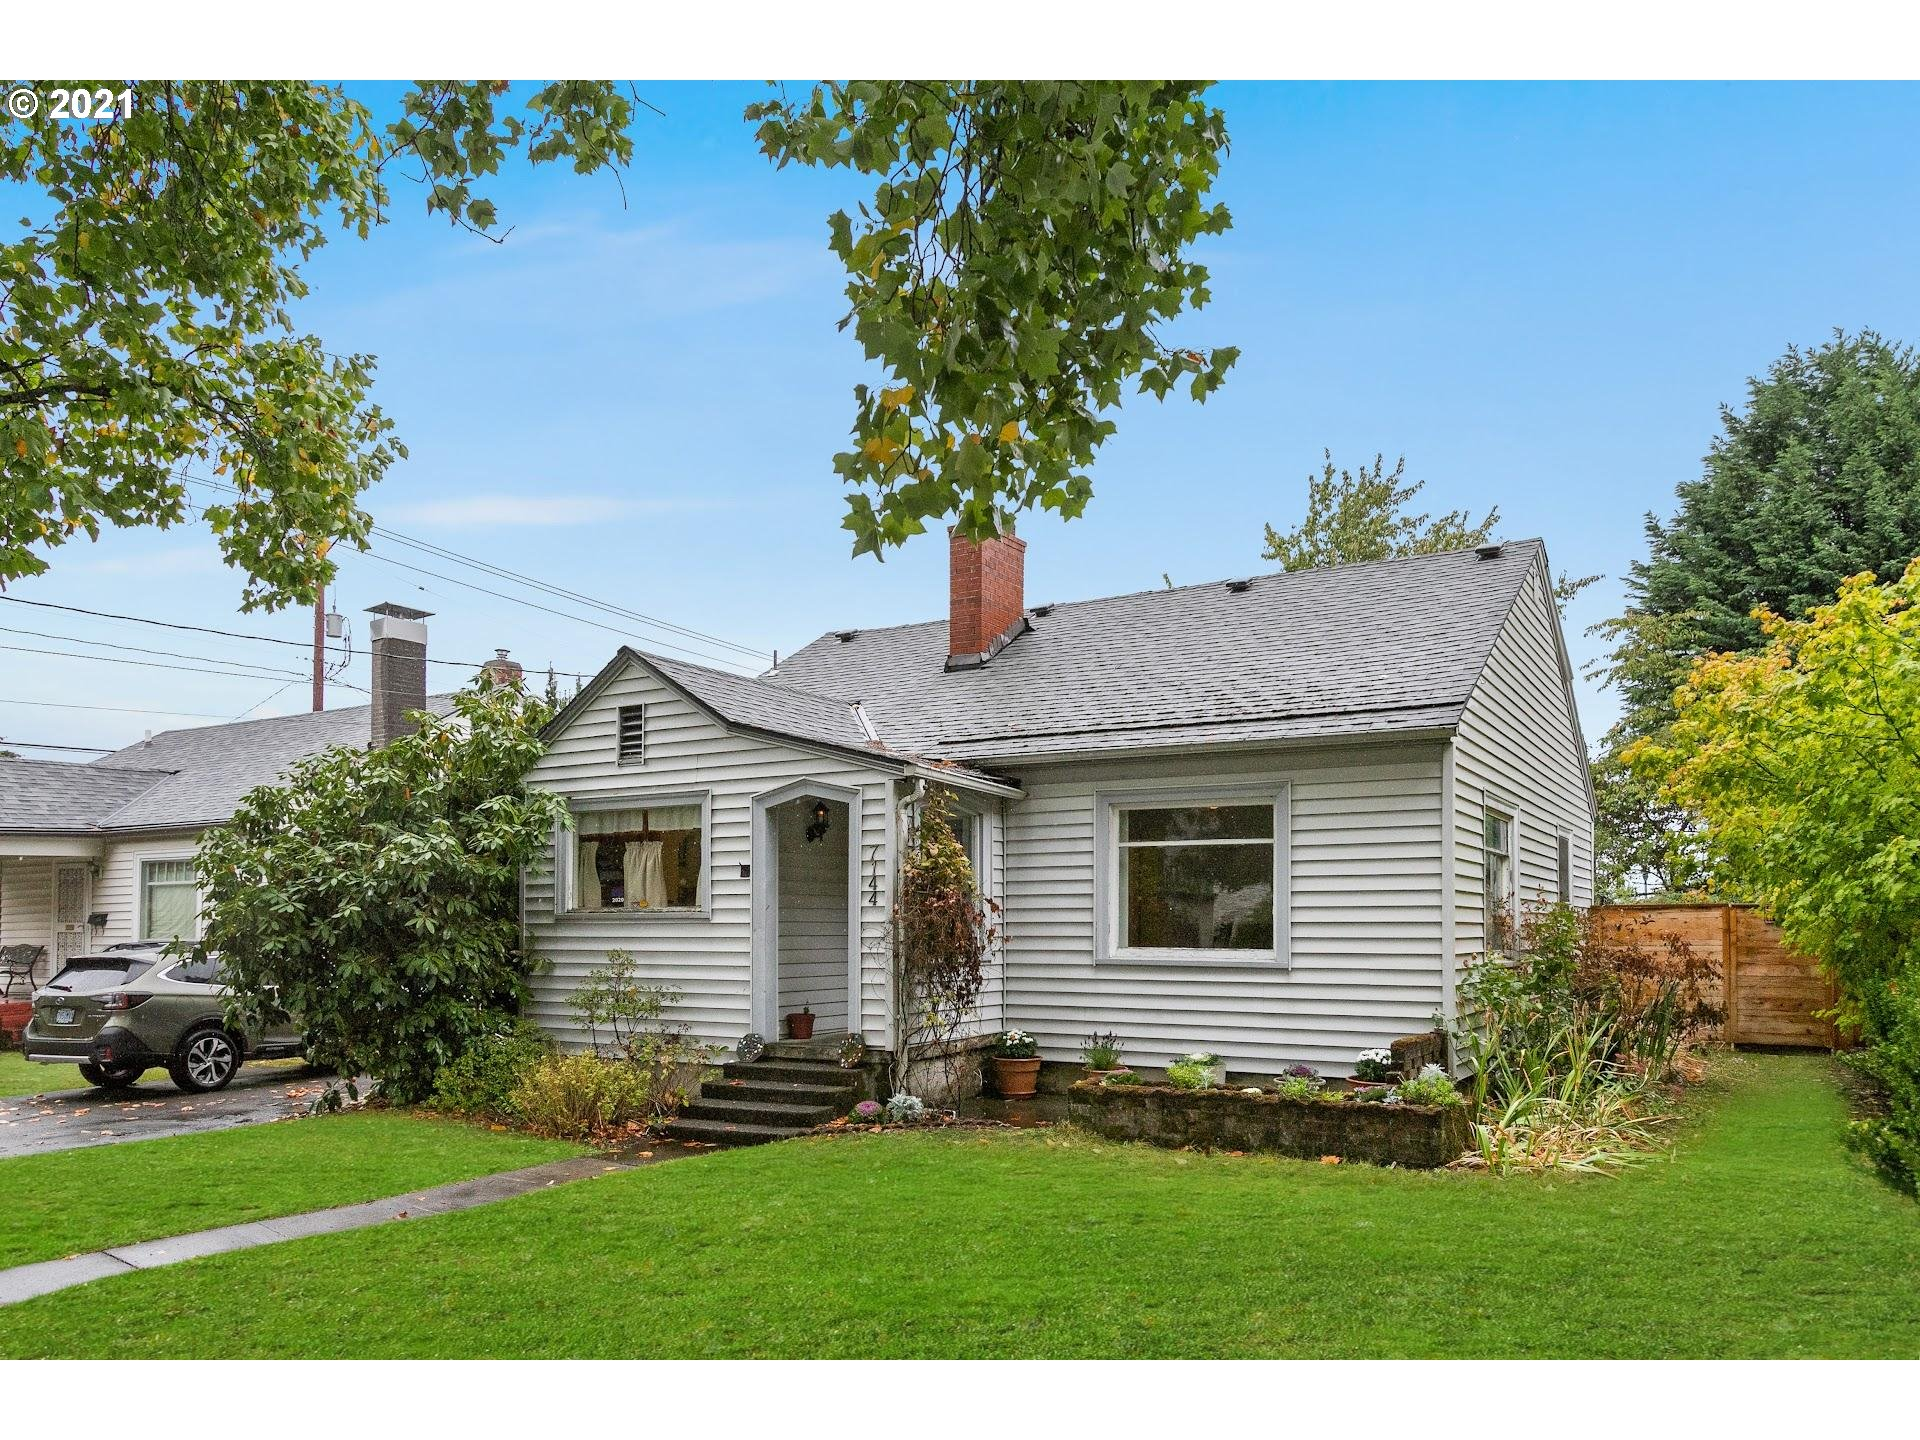 7144 N CONCORD AVE, Portland OR 97217